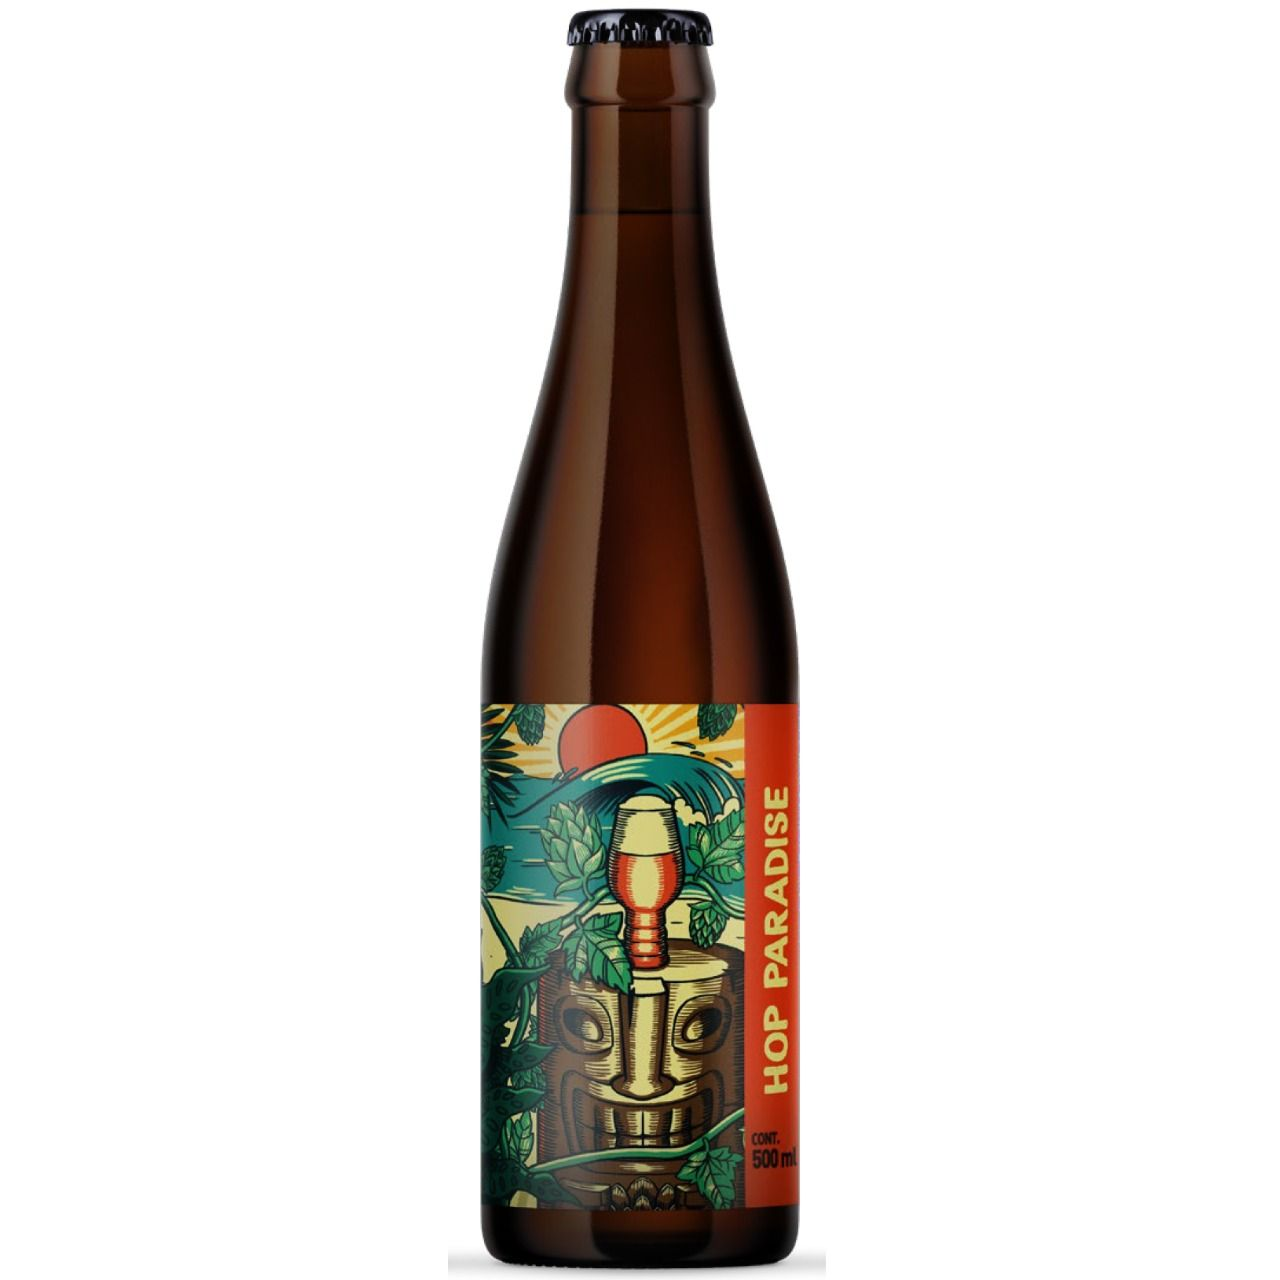 Hop Paradise - American Wheat IPA - 500ml | Gobe Craft Beers